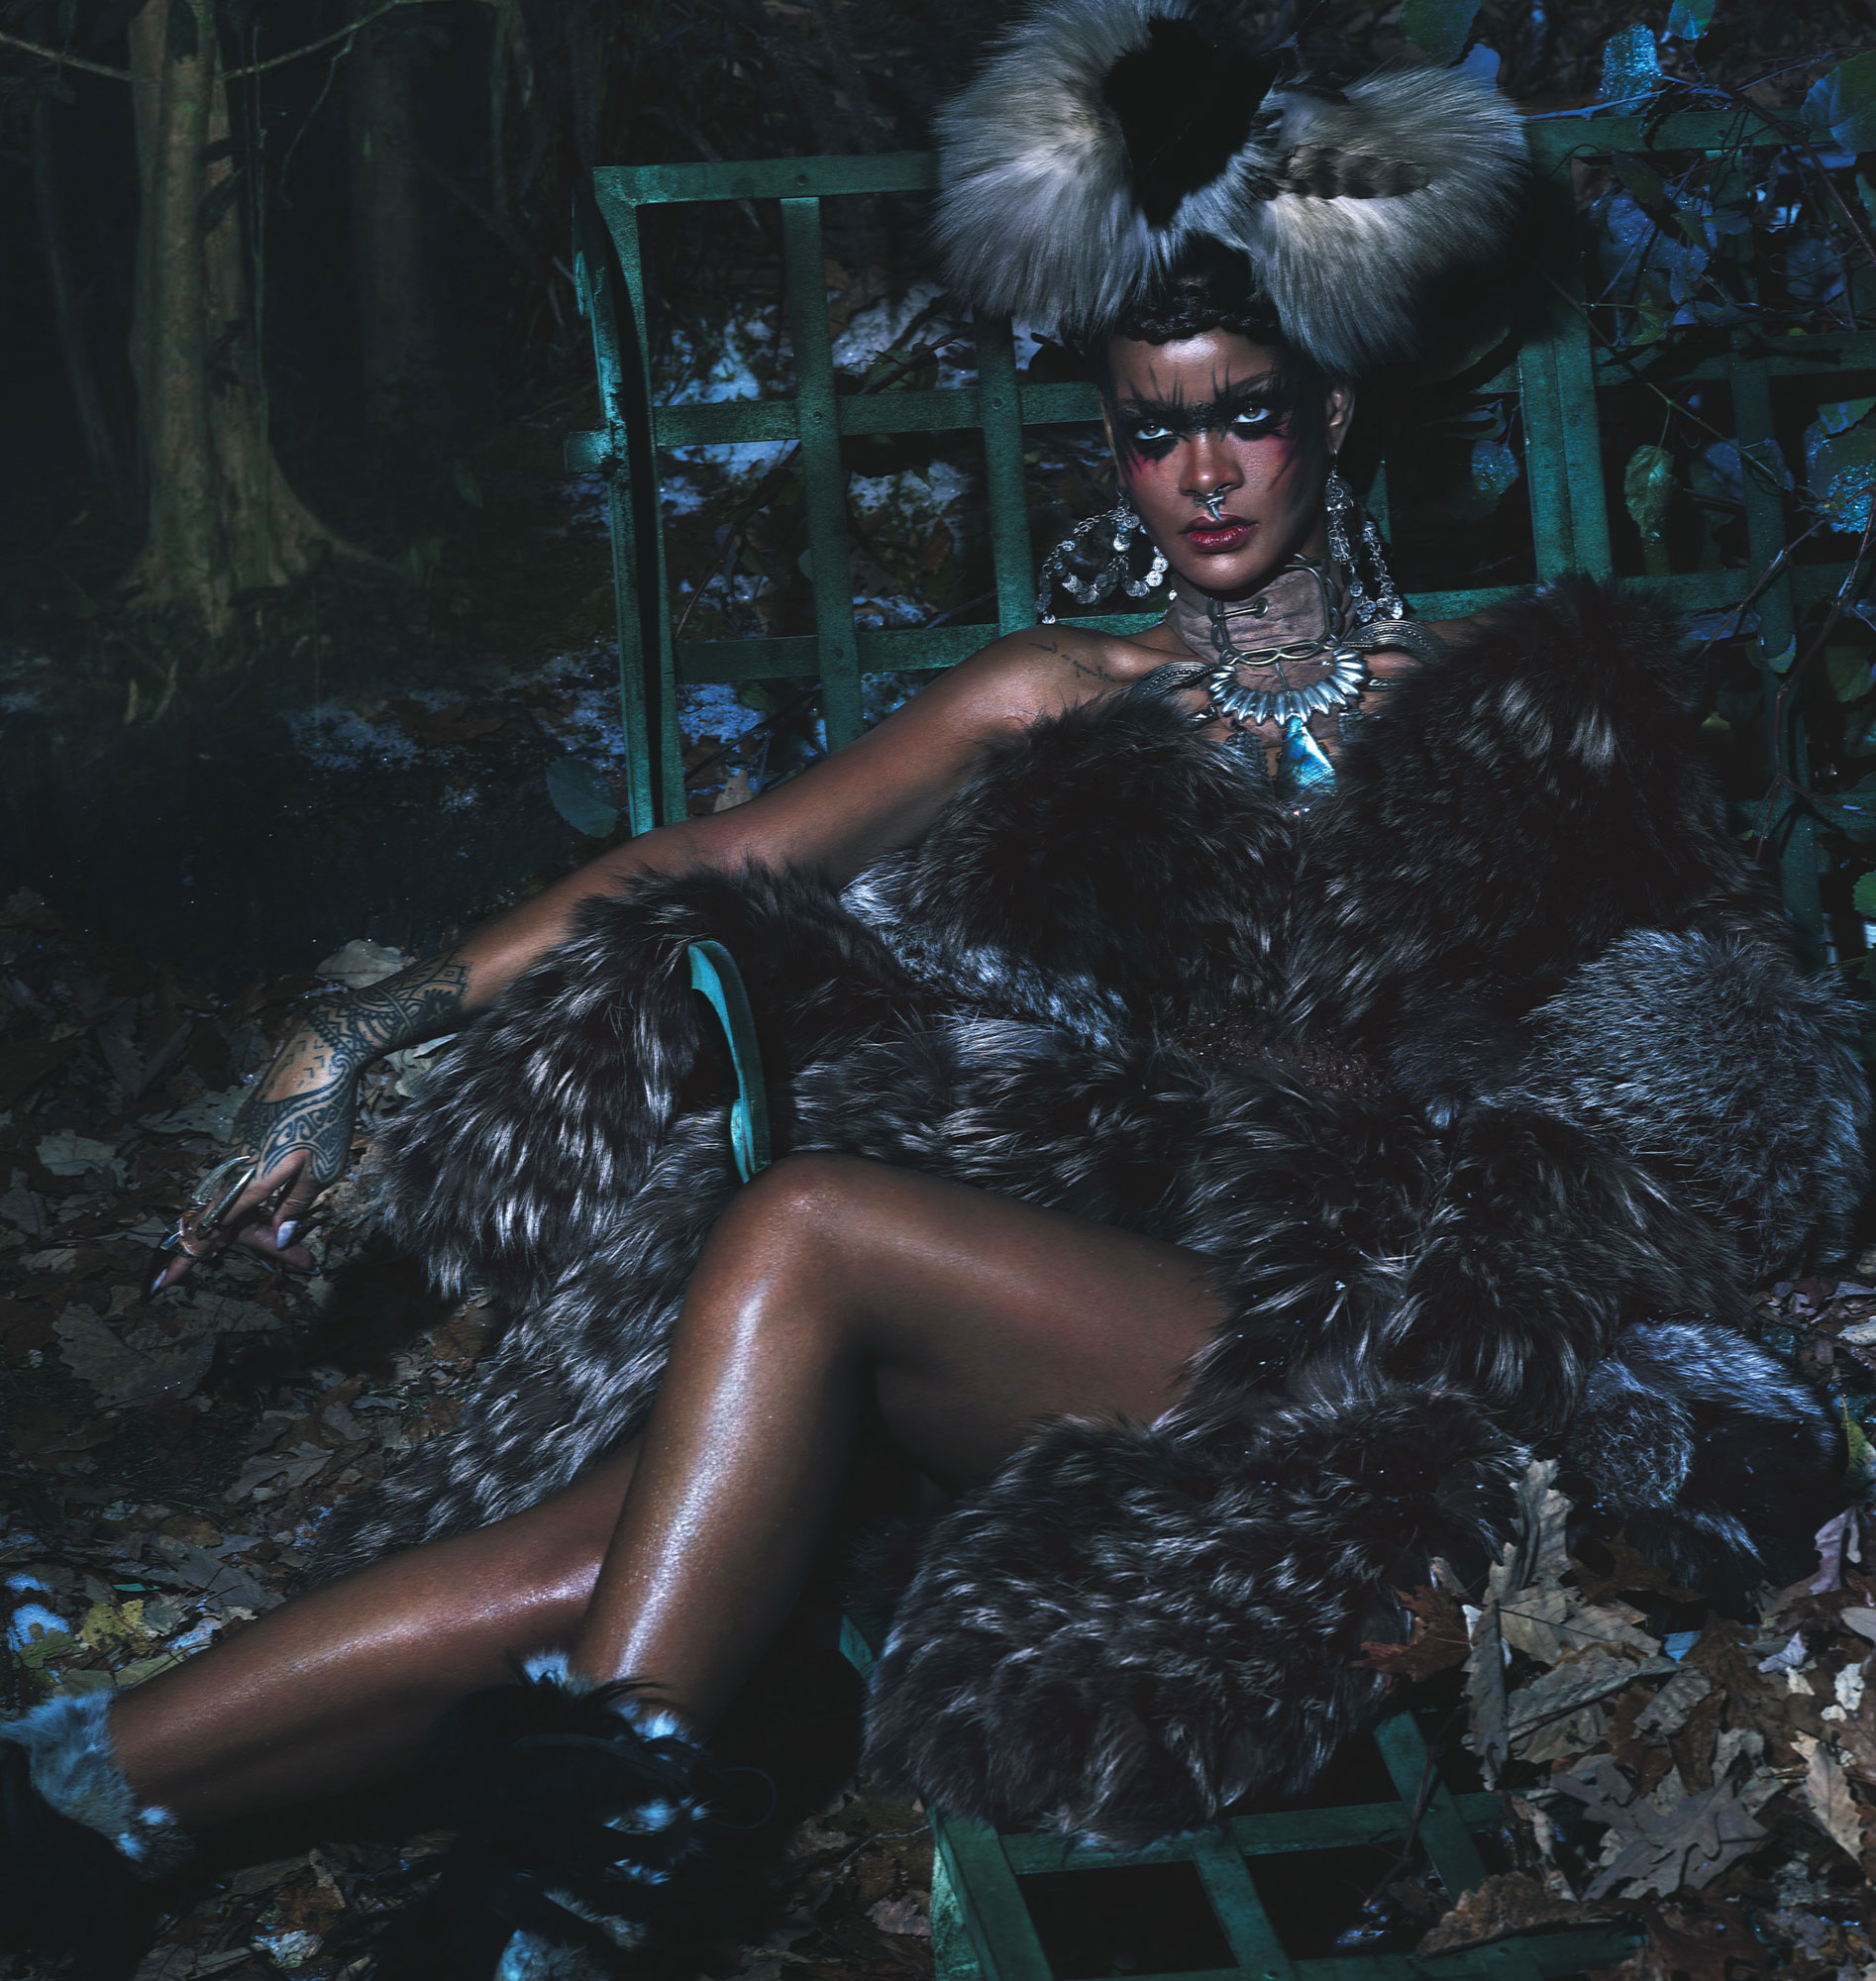 rihanna-by-mert-alas-marcus-piggott-for-w-magazine-september-2014-1.jpg